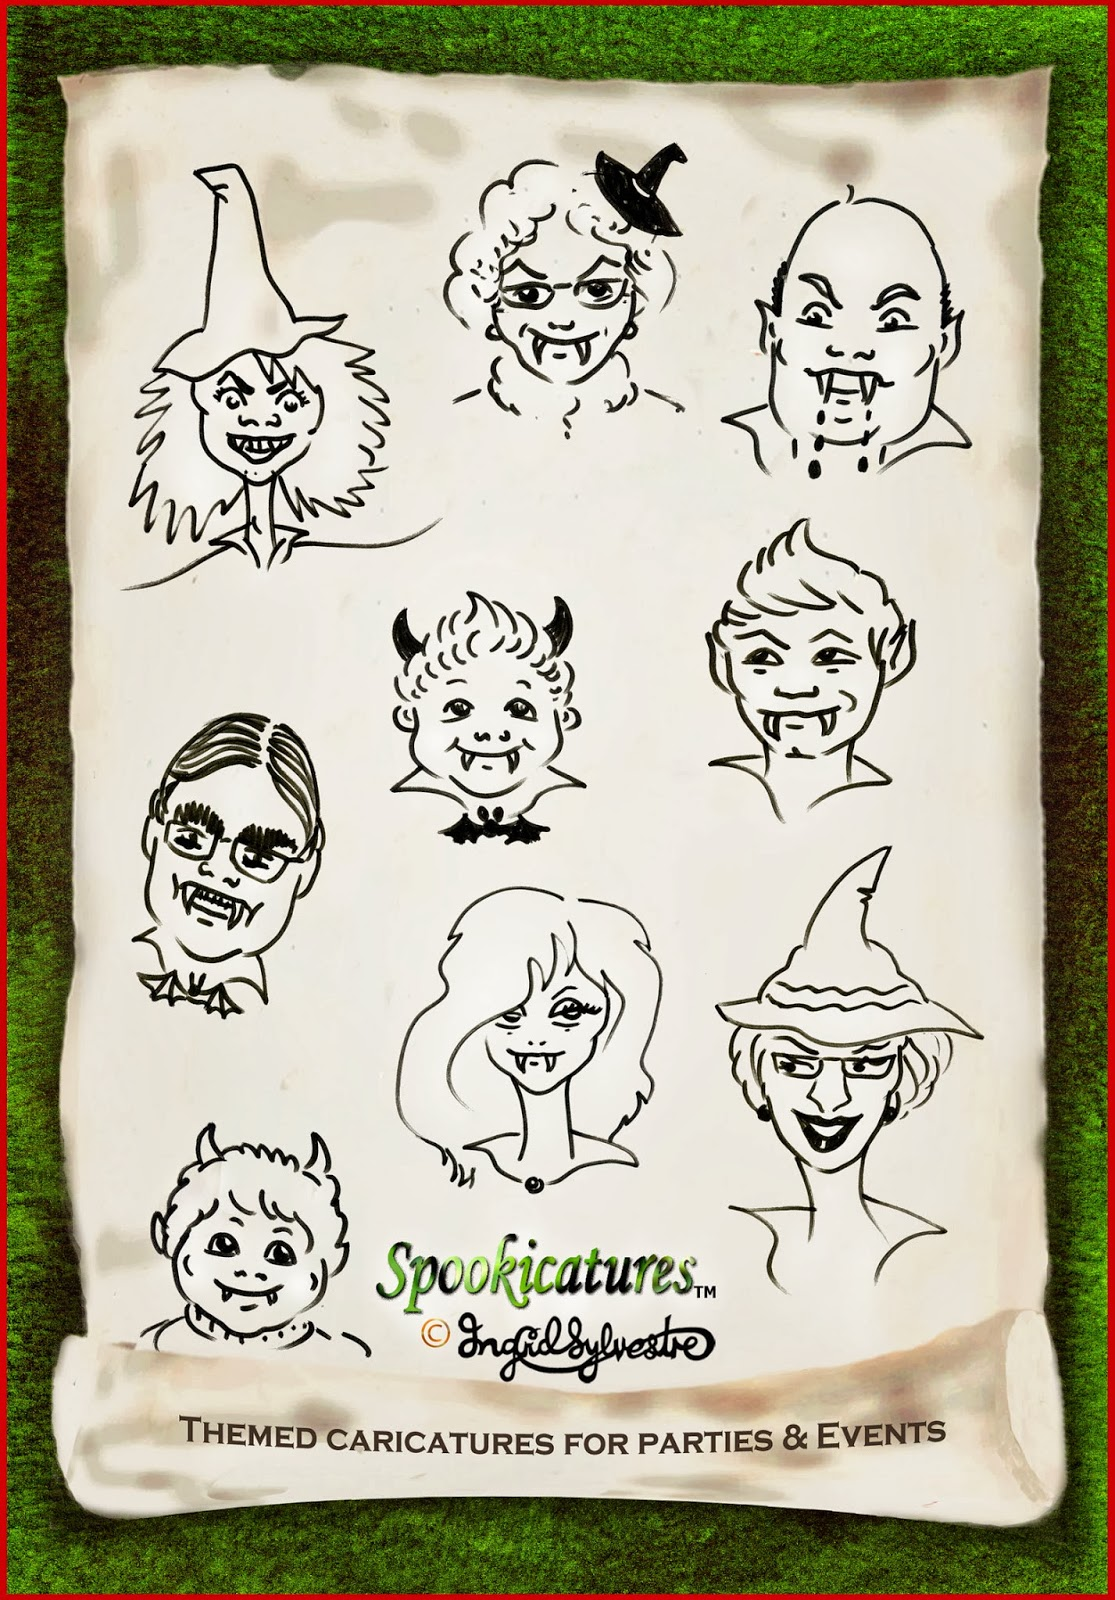 Spookicatures TM - themed caricatures for parties and events - Ingrid Sylvestre caricaturist UK & worldwide